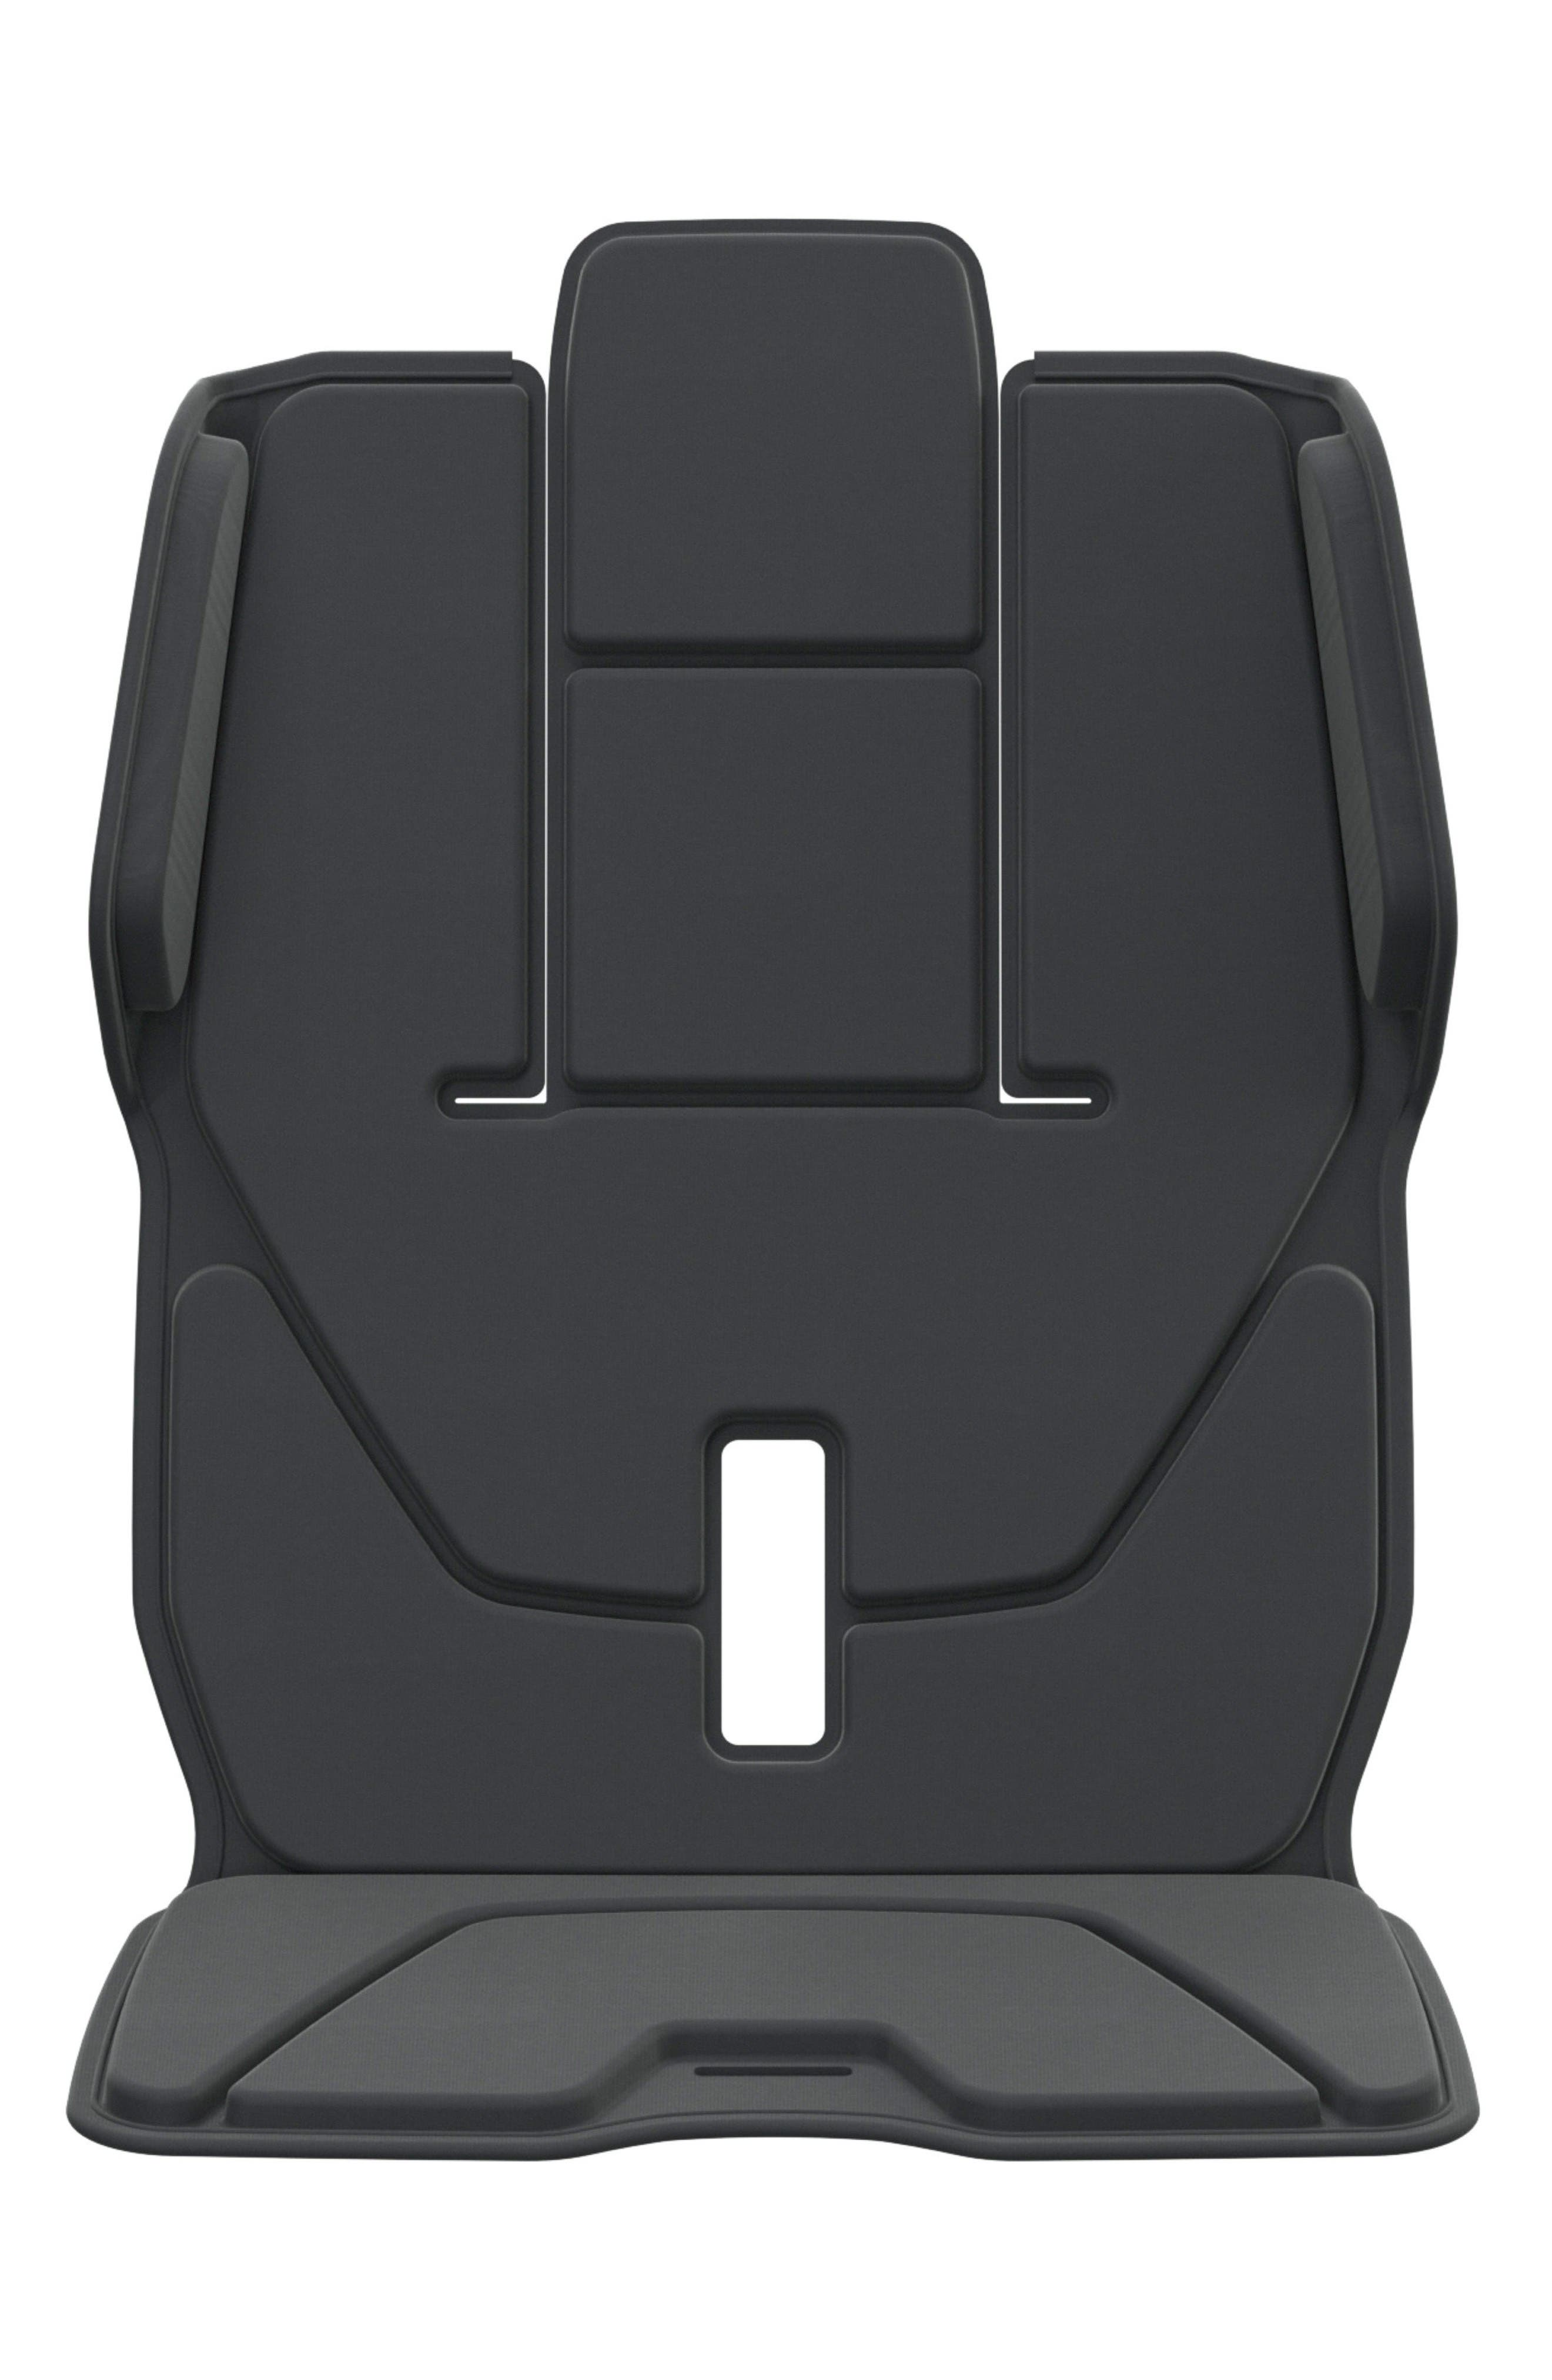 Main Image - Thule Chariot Padding 1 for Chariot Lite & Chariot Cross Single Strollers